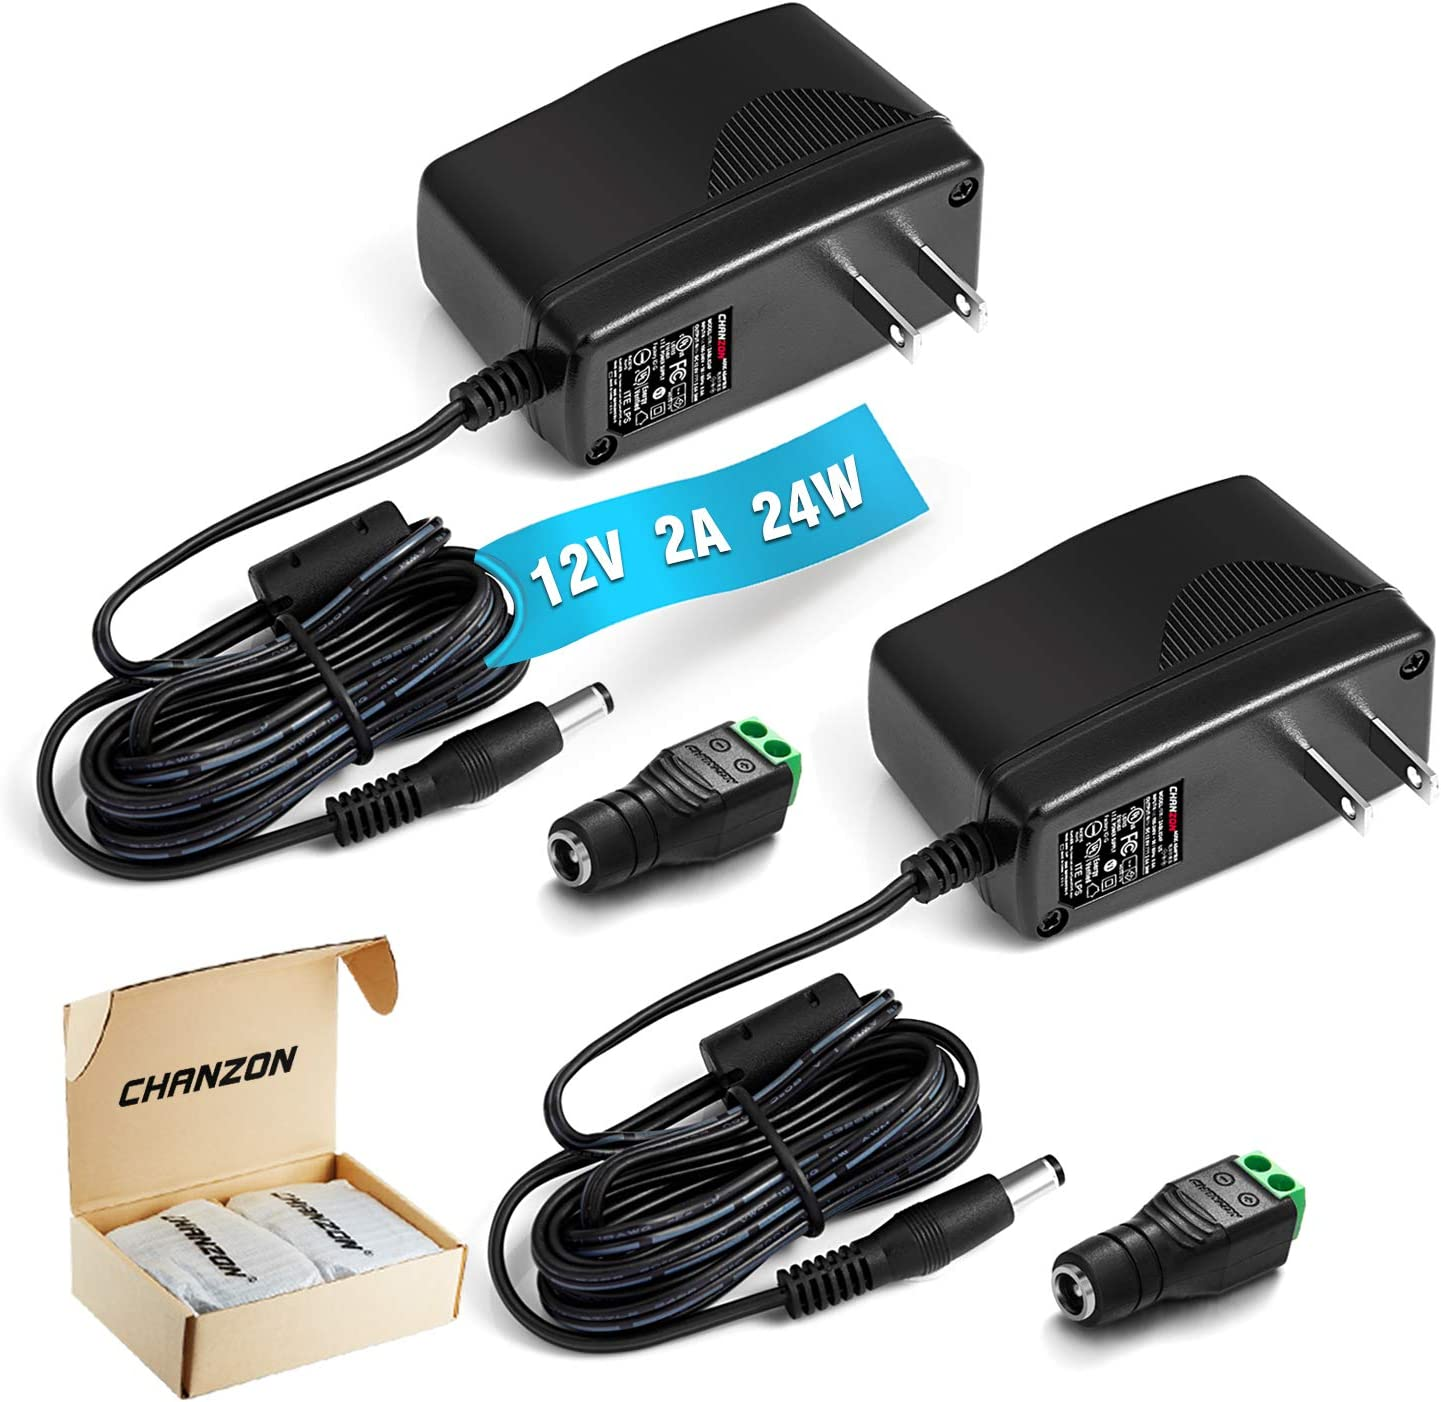 New arrival UL Listed Chanzon 12V 2A 24W Adap DC AC Power Don't miss the campaign Supply Switching